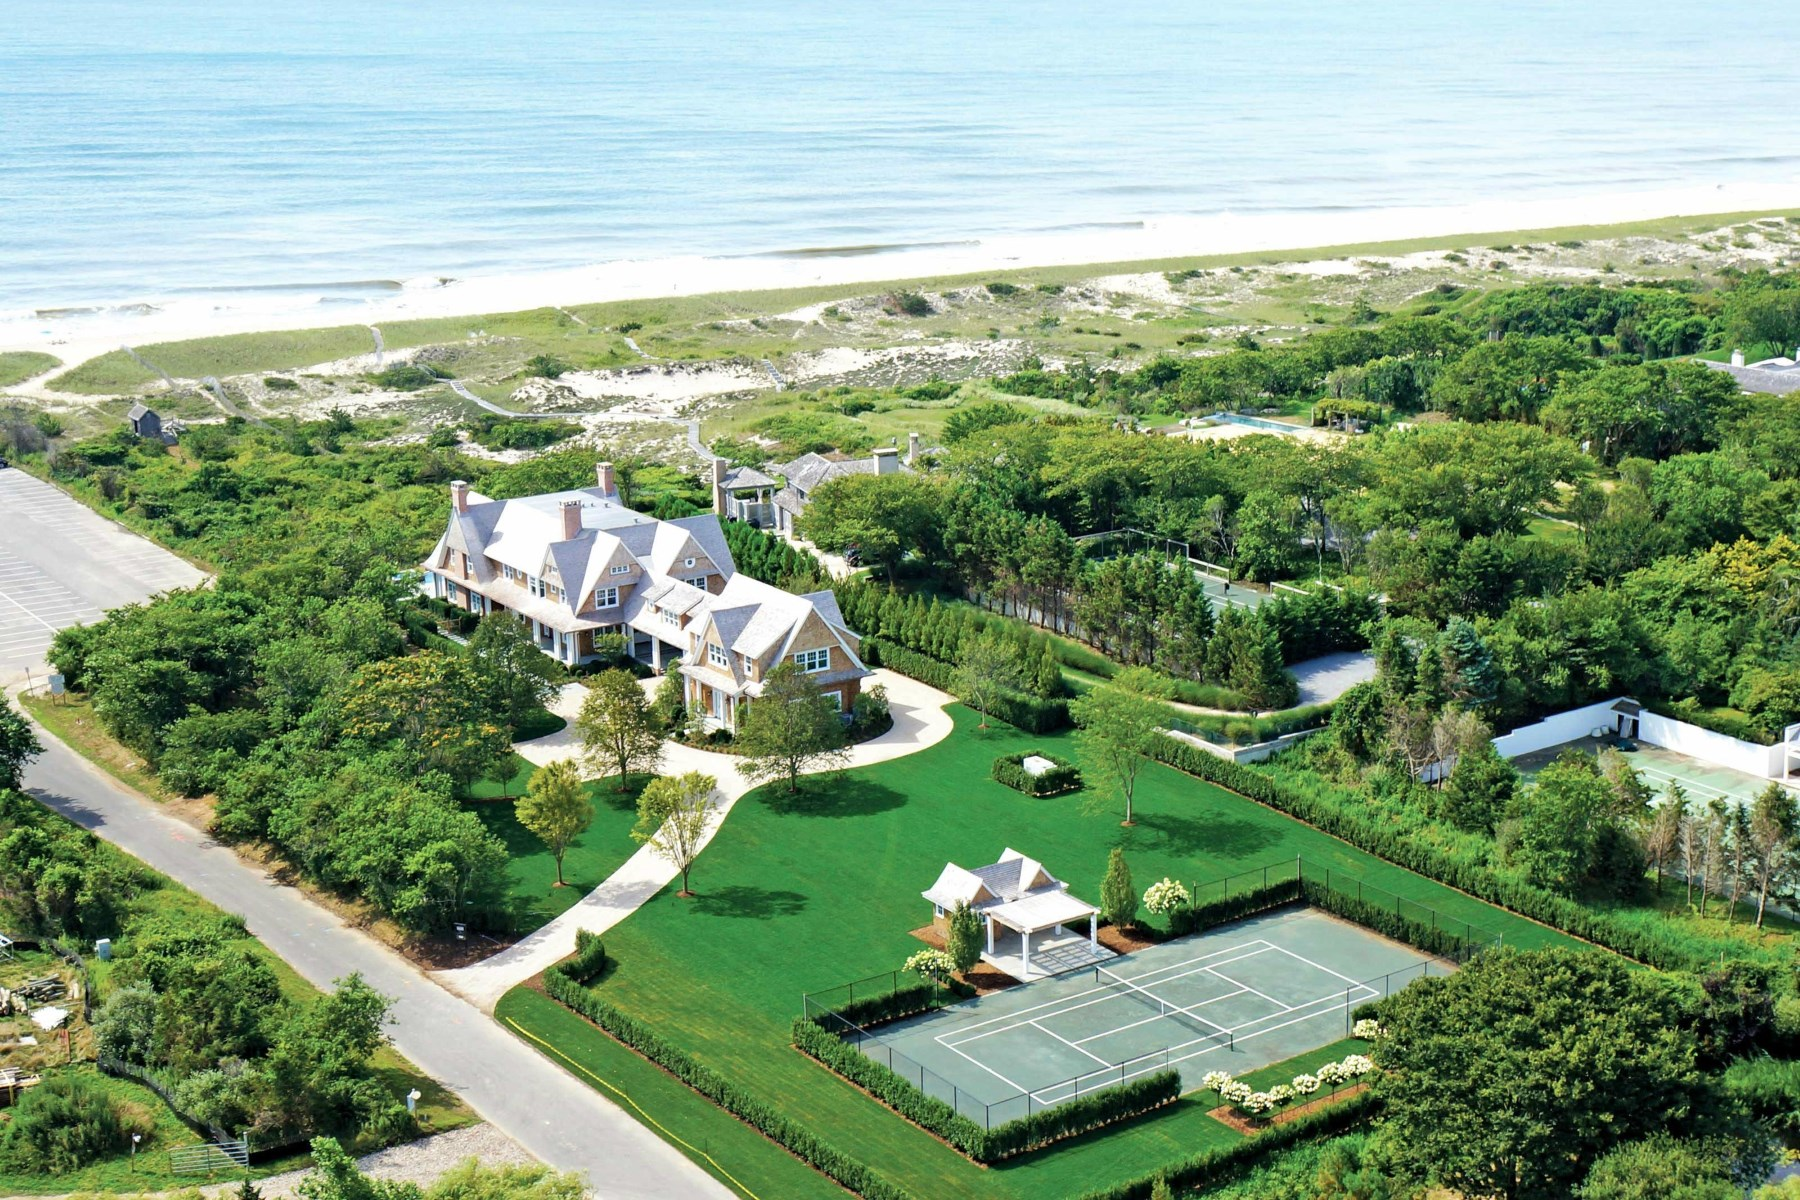 Casa Unifamiliar por un Venta en East Hampton Oceanfront, Pool and Tennis 38 Two Mile Hollow Road East Hampton Village, East Hampton, Nueva York 11937 Estados Unidos